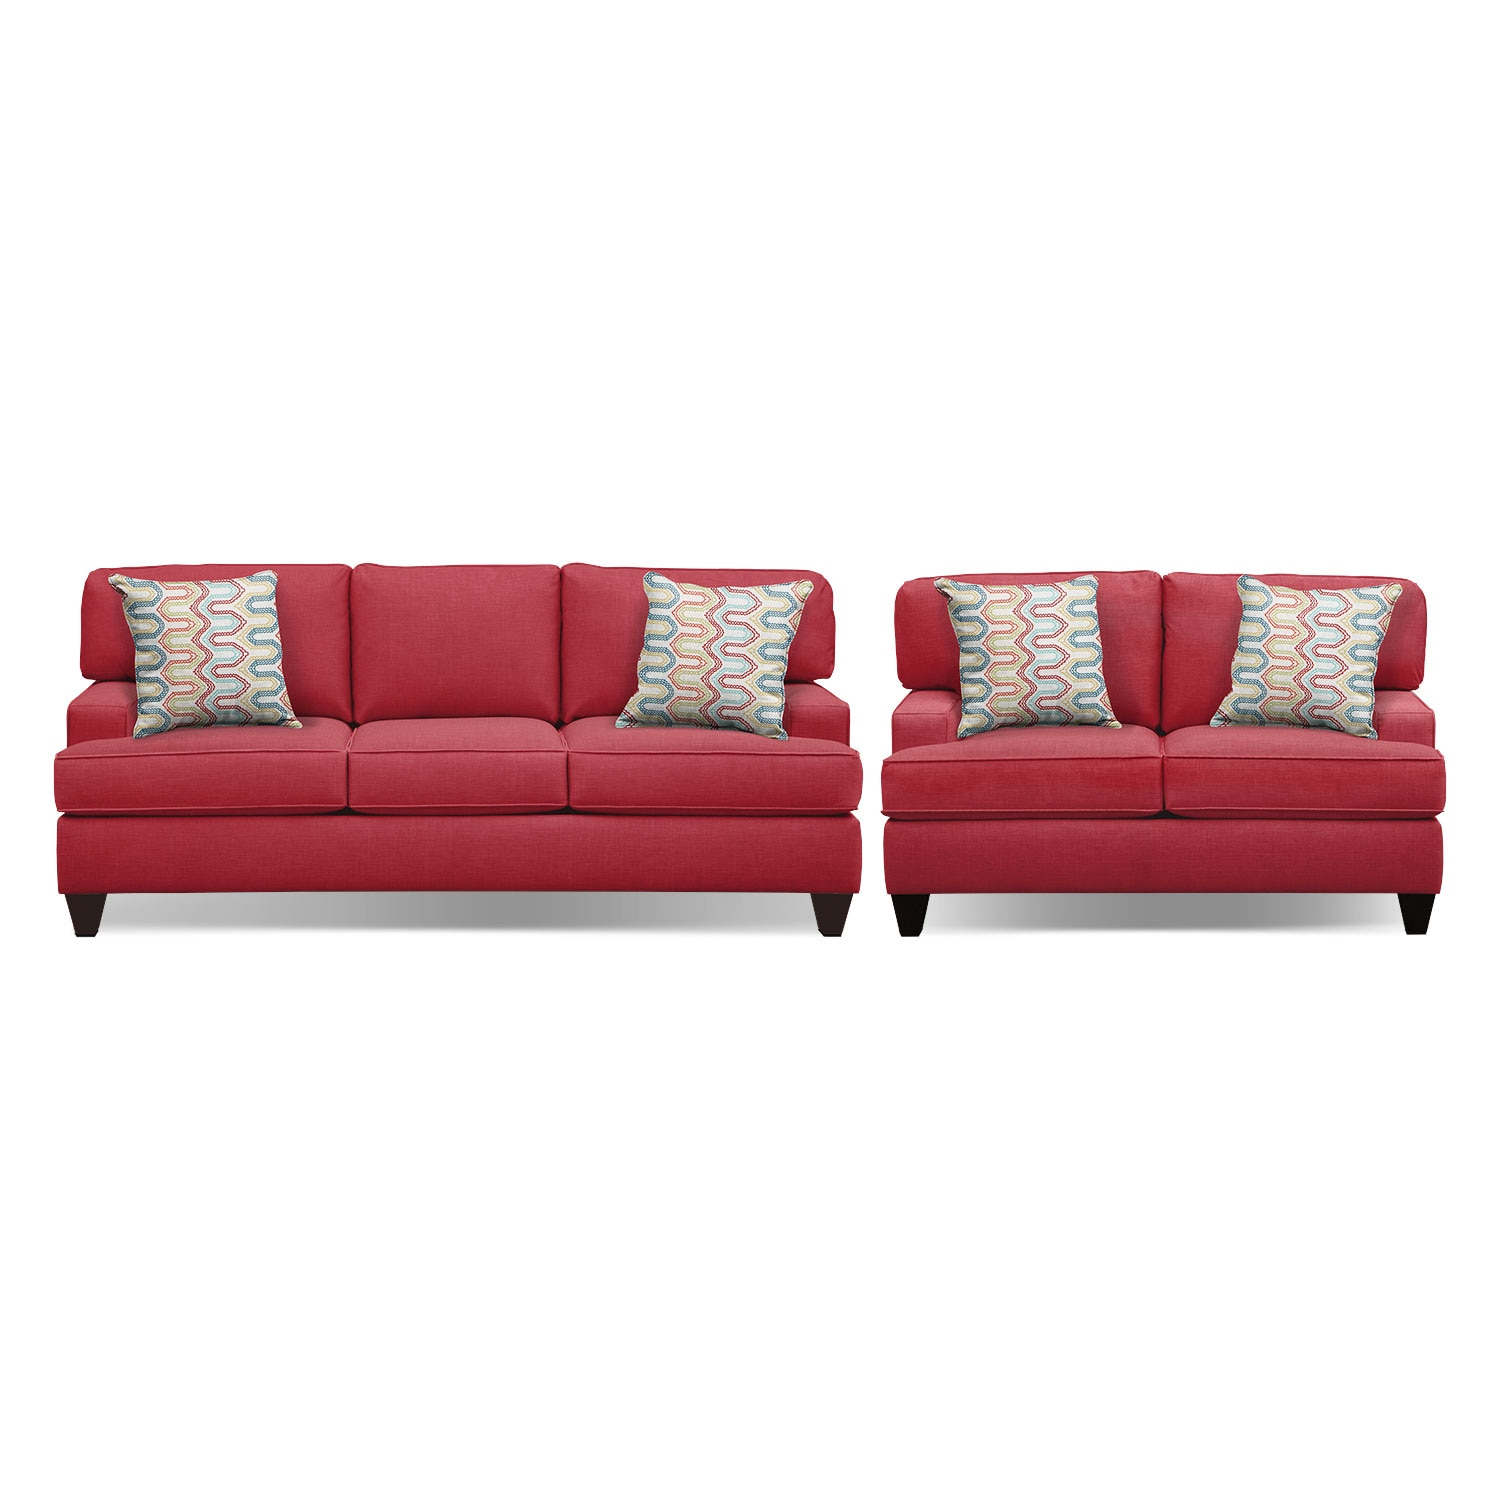 "Living Room Furniture - Conner Red 87"" Memory Foam Sleeper Sofa and 63"" Sofa Set"